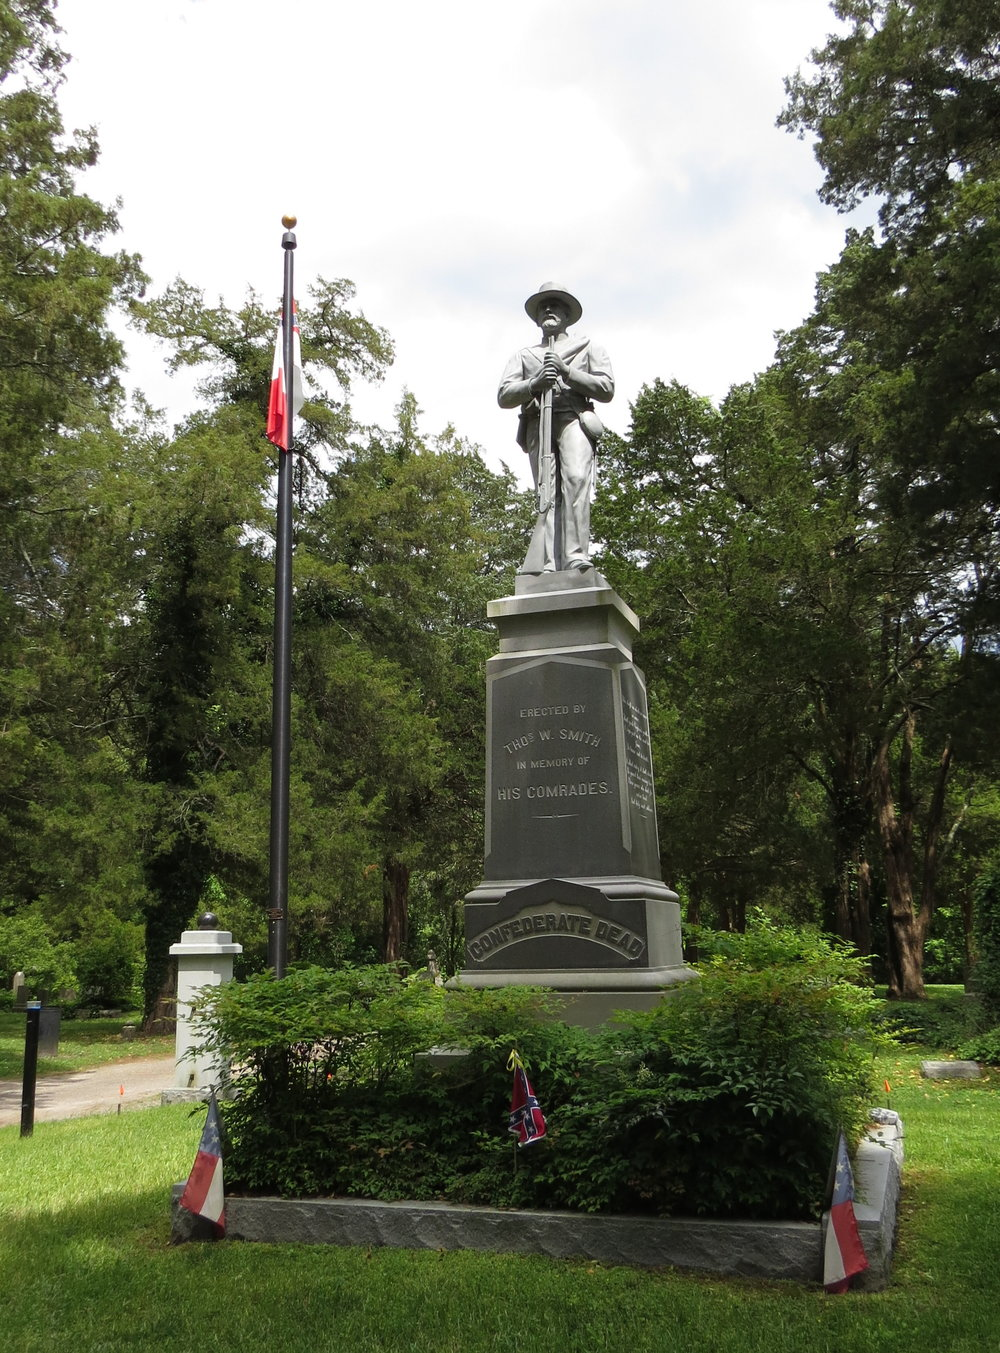 Monument to Confederate dead